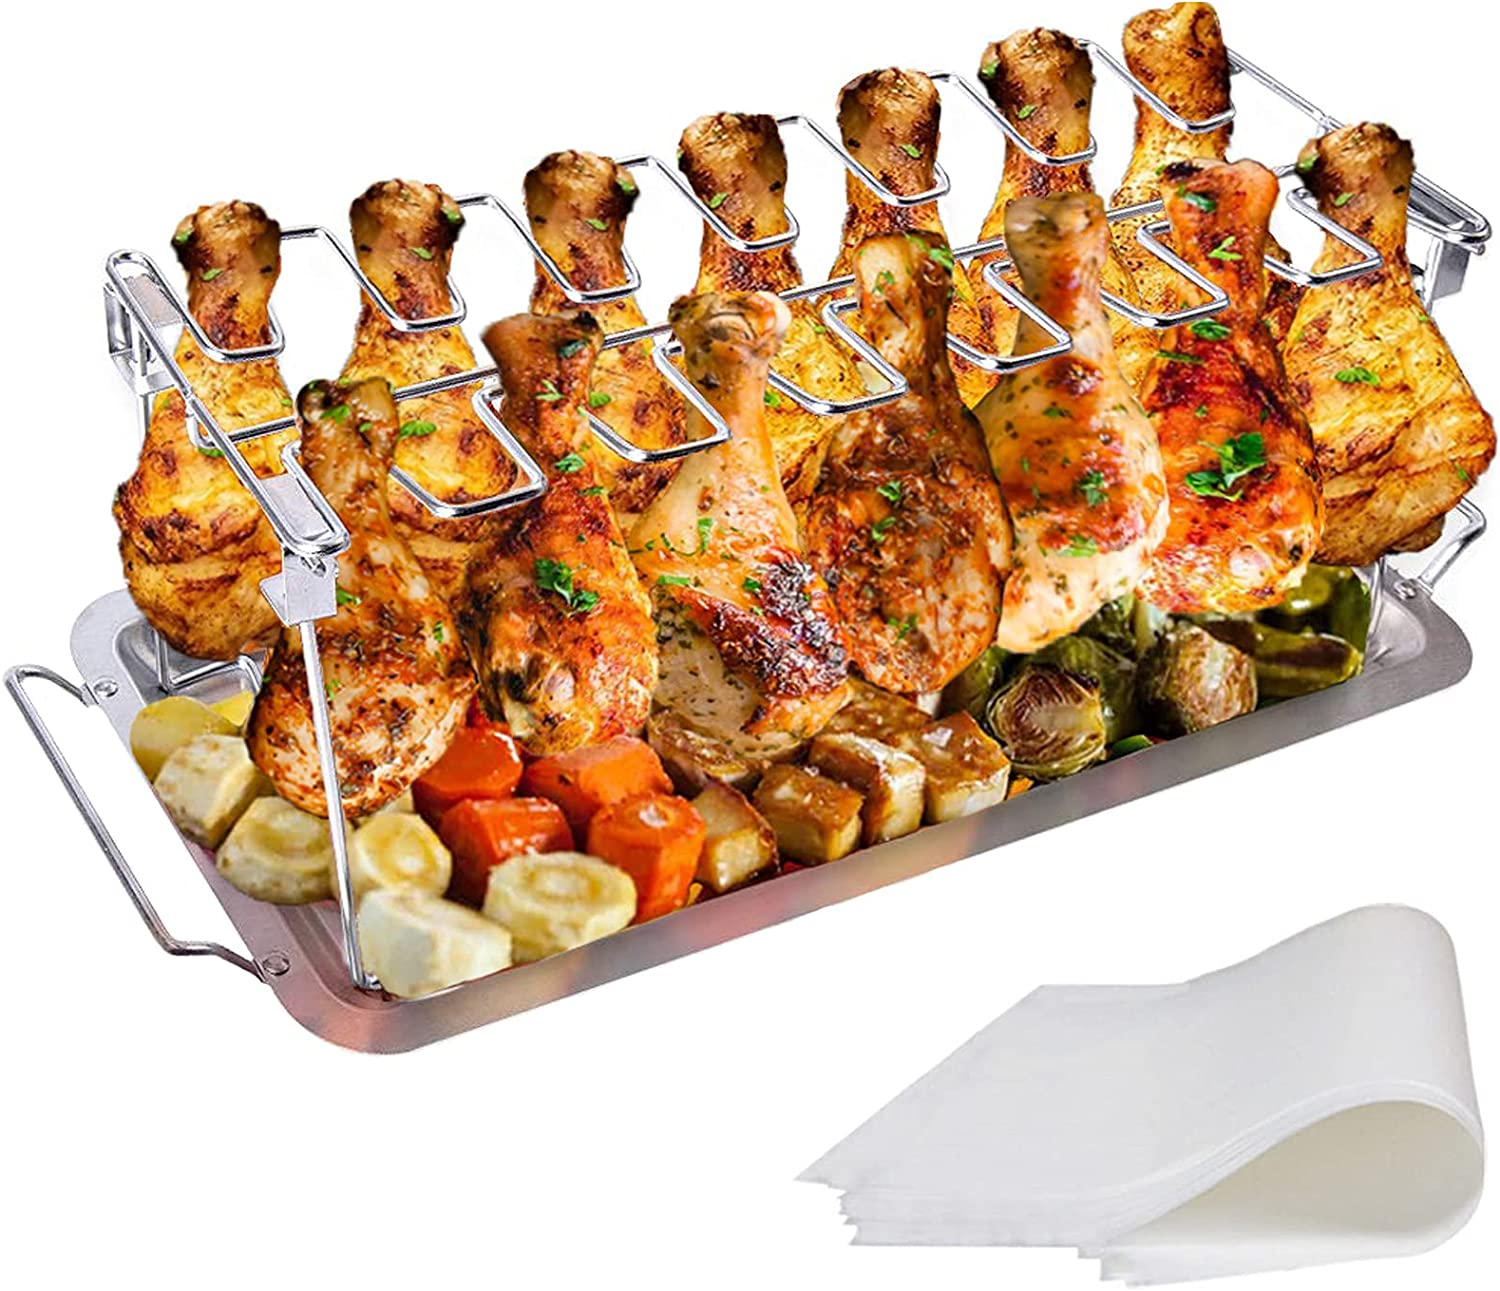 yamisan Chicken Leg Wing Grill Rack - 14 Slots Stainless Steel Roaster Stand with Drip Pan, BBQ Chicken Drumsticks Rack for Smoker Grill or Oven : Garden & Outdoor